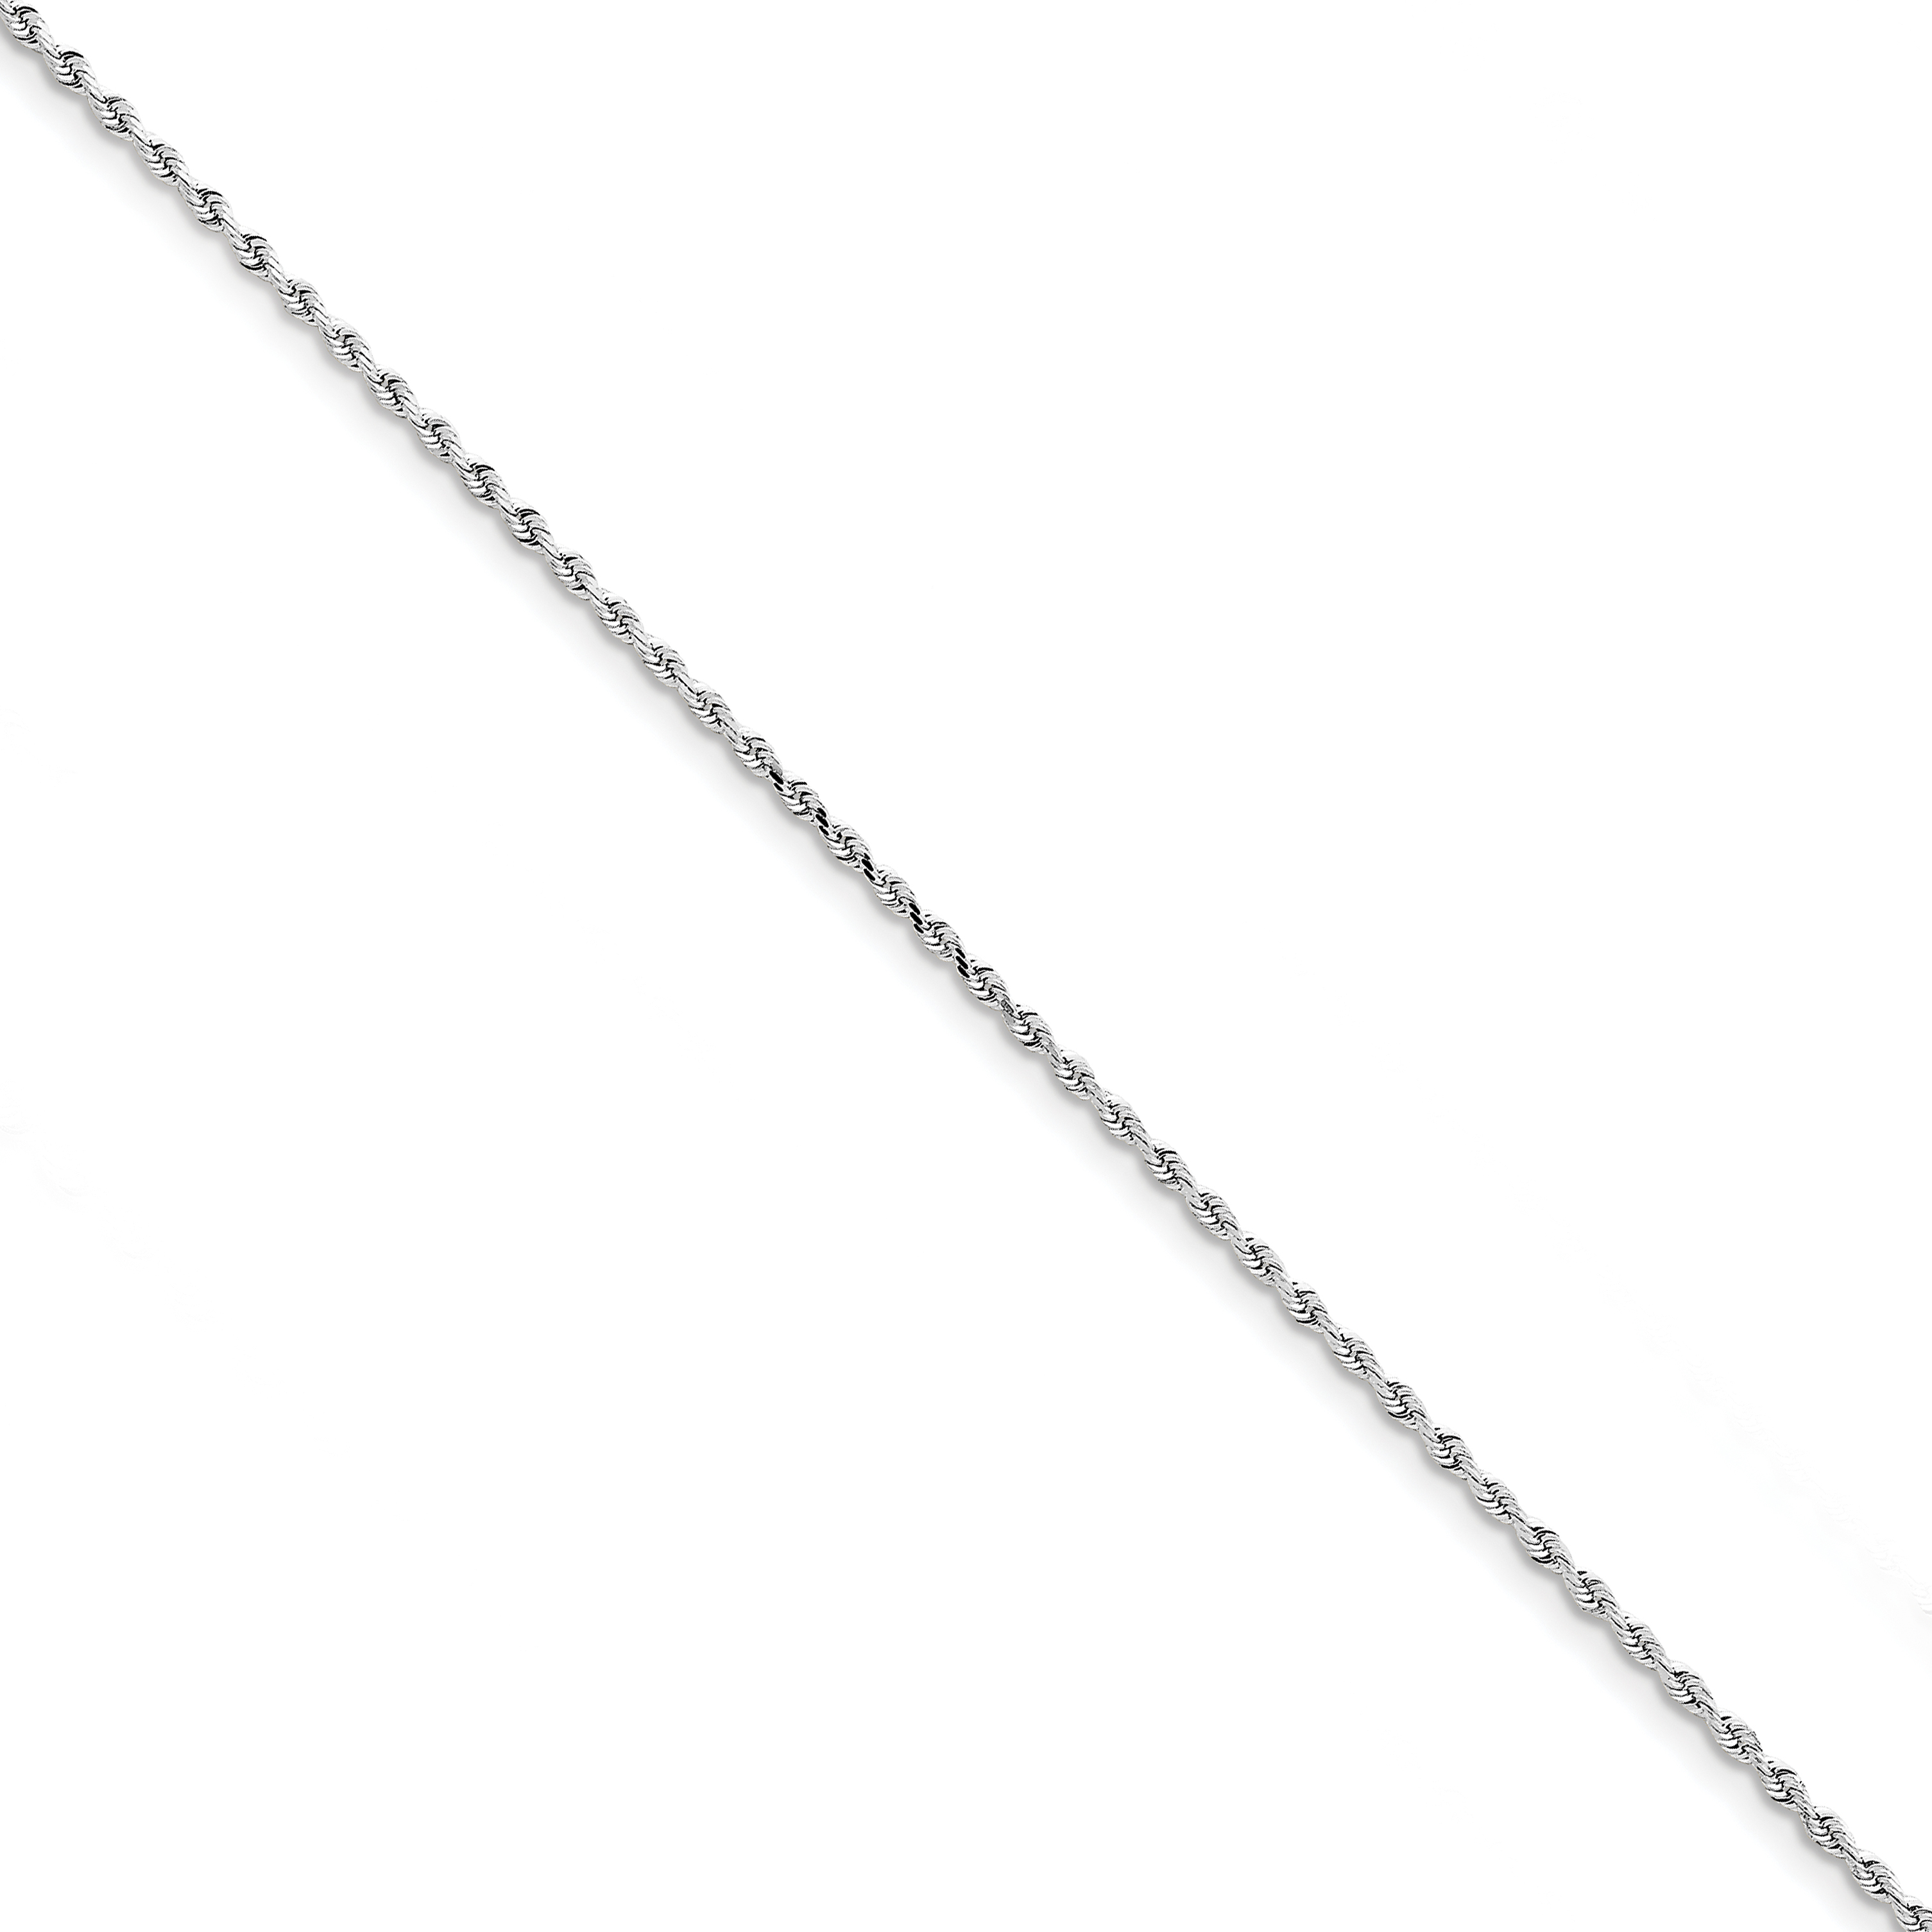 10K White Gold 2.00mm Diamond Cut Quadruple Rope Chain Anklet 9 Inch - image 2 of 2